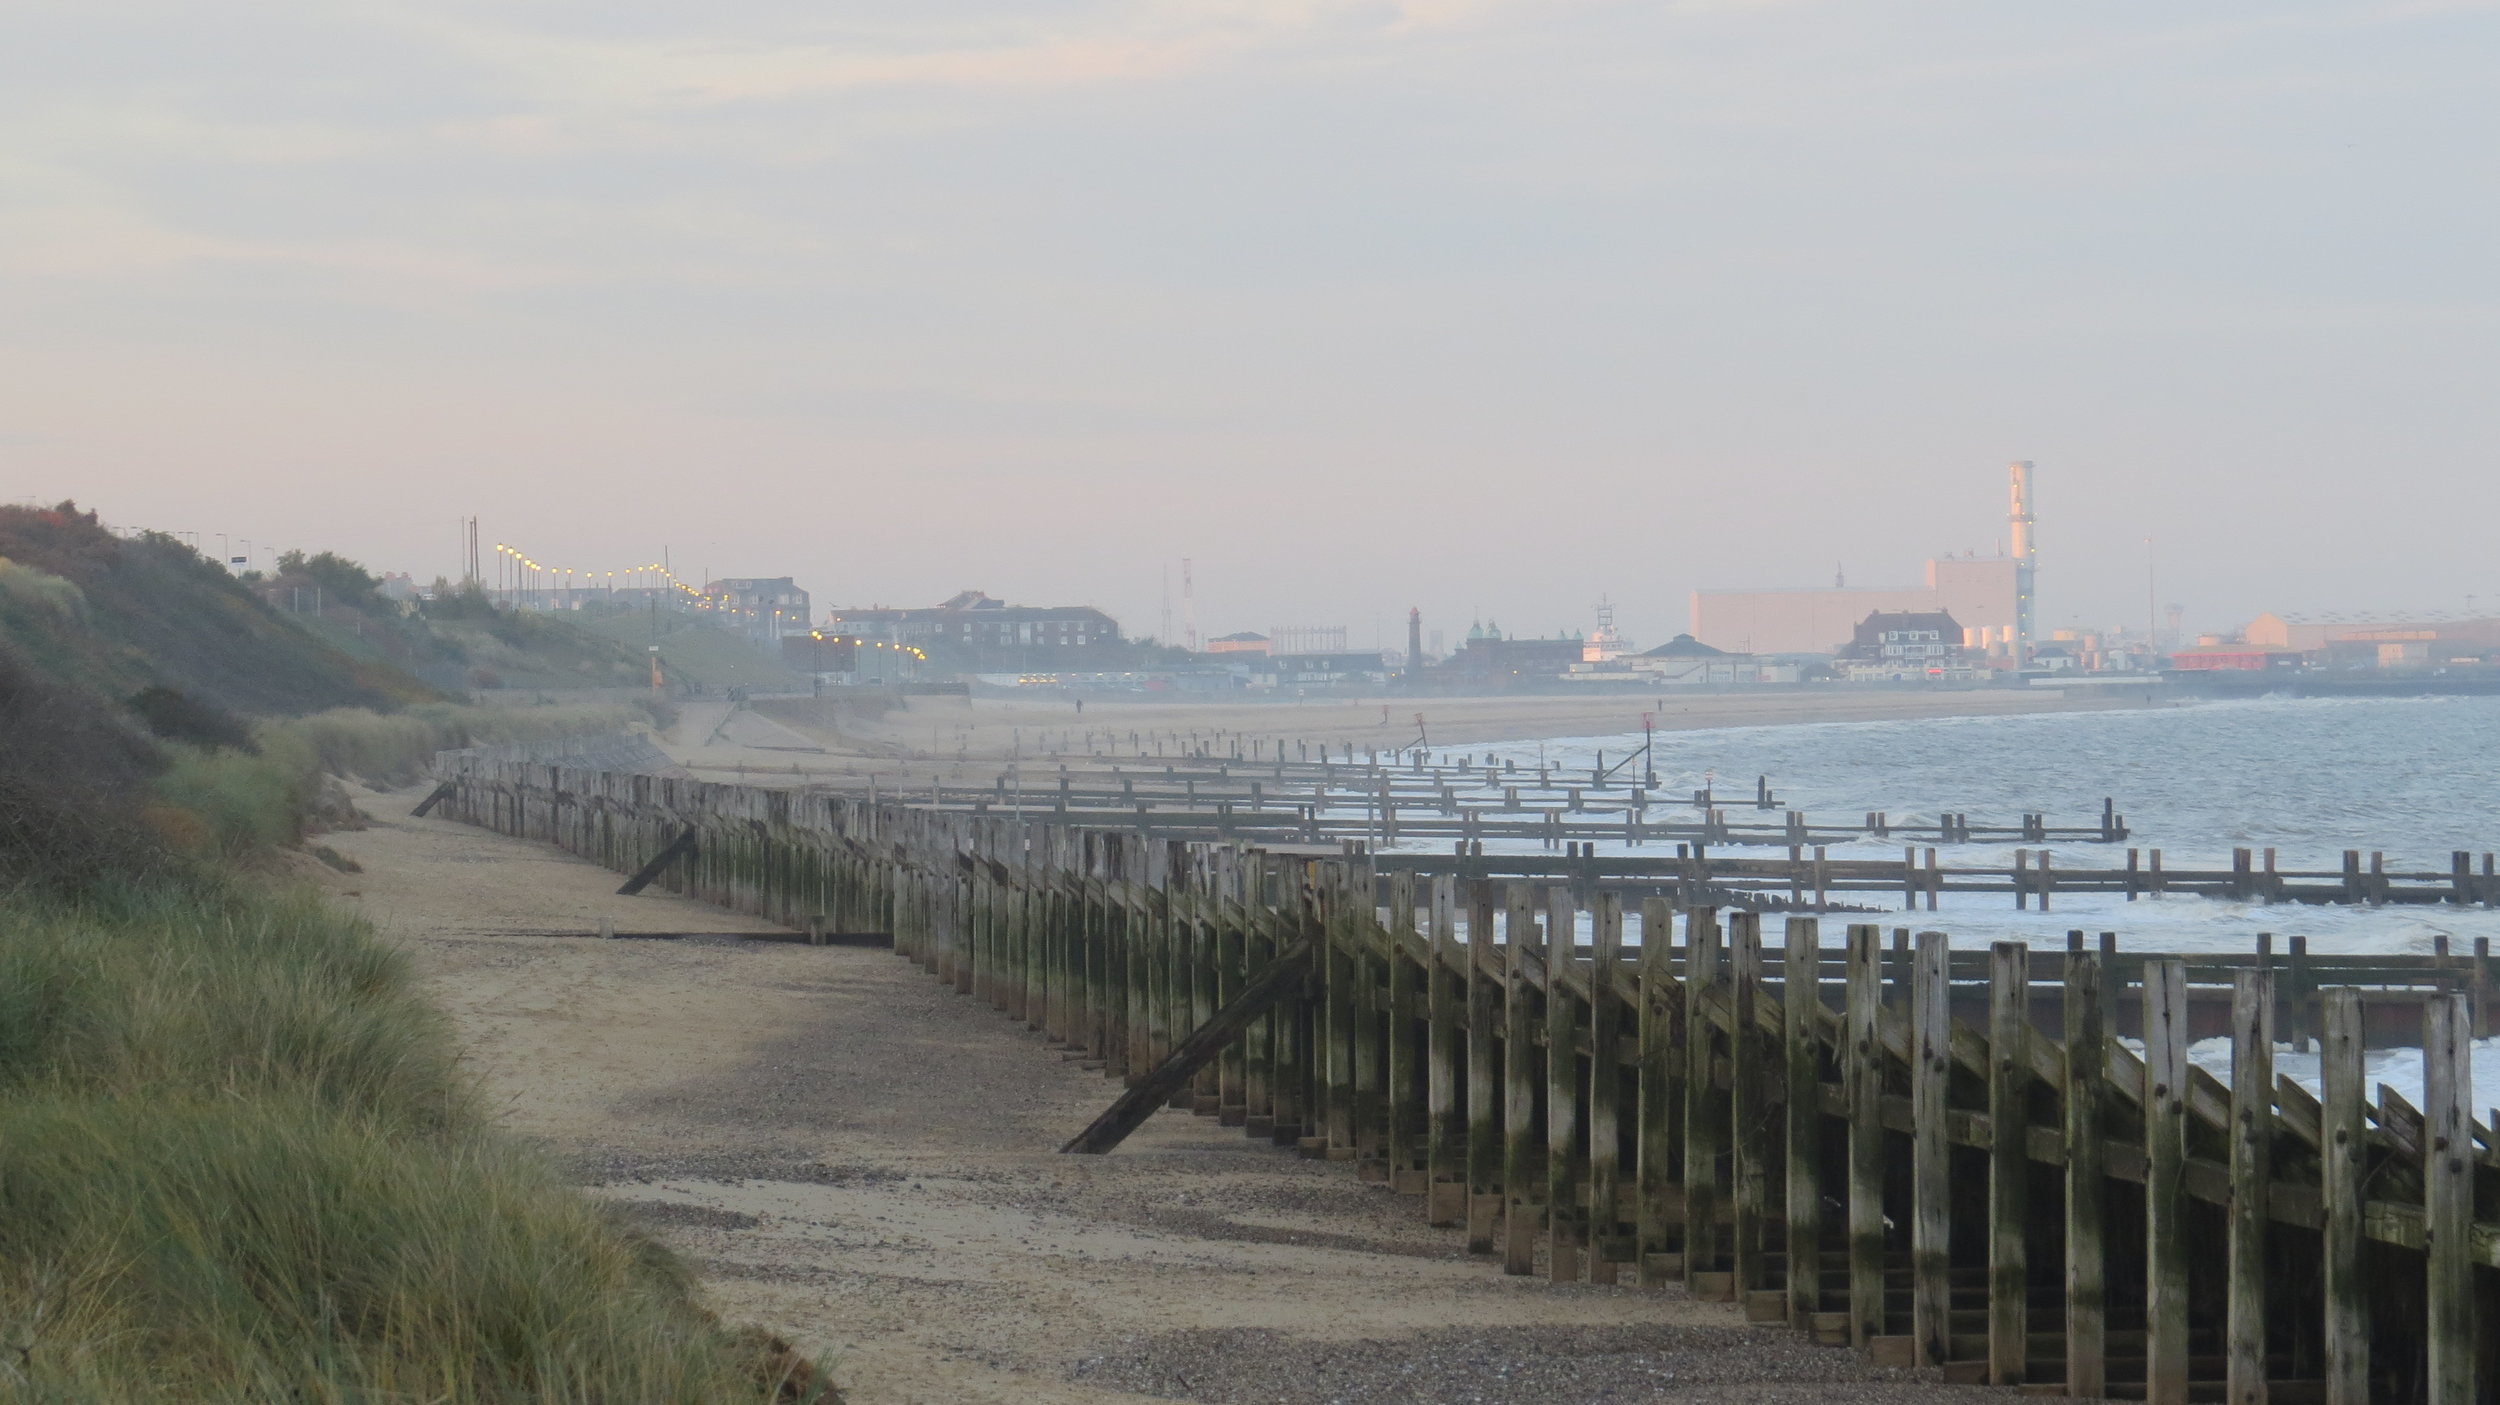 Looking back to Great Yarmouth